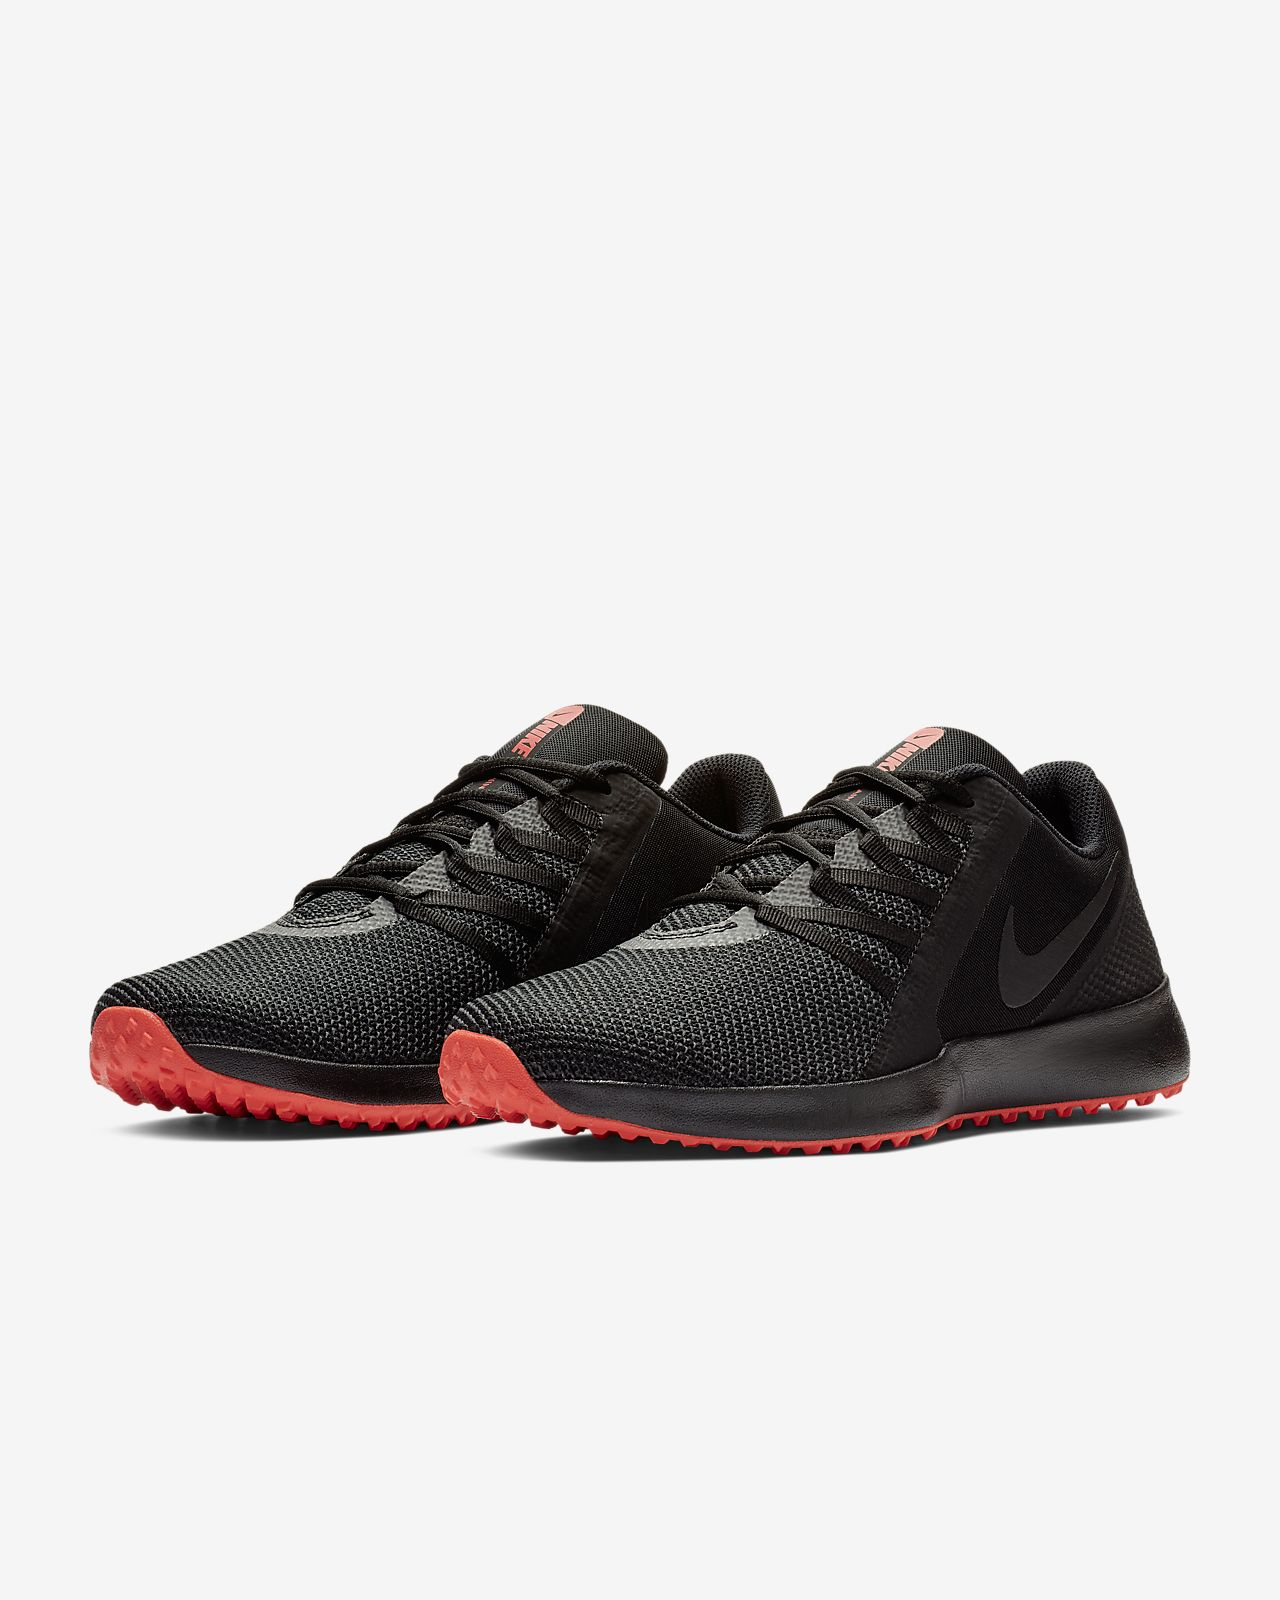 new arrival a8958 04d6f ... Nike Varsity Compete Trainer Men s Gym Sport Training Shoe